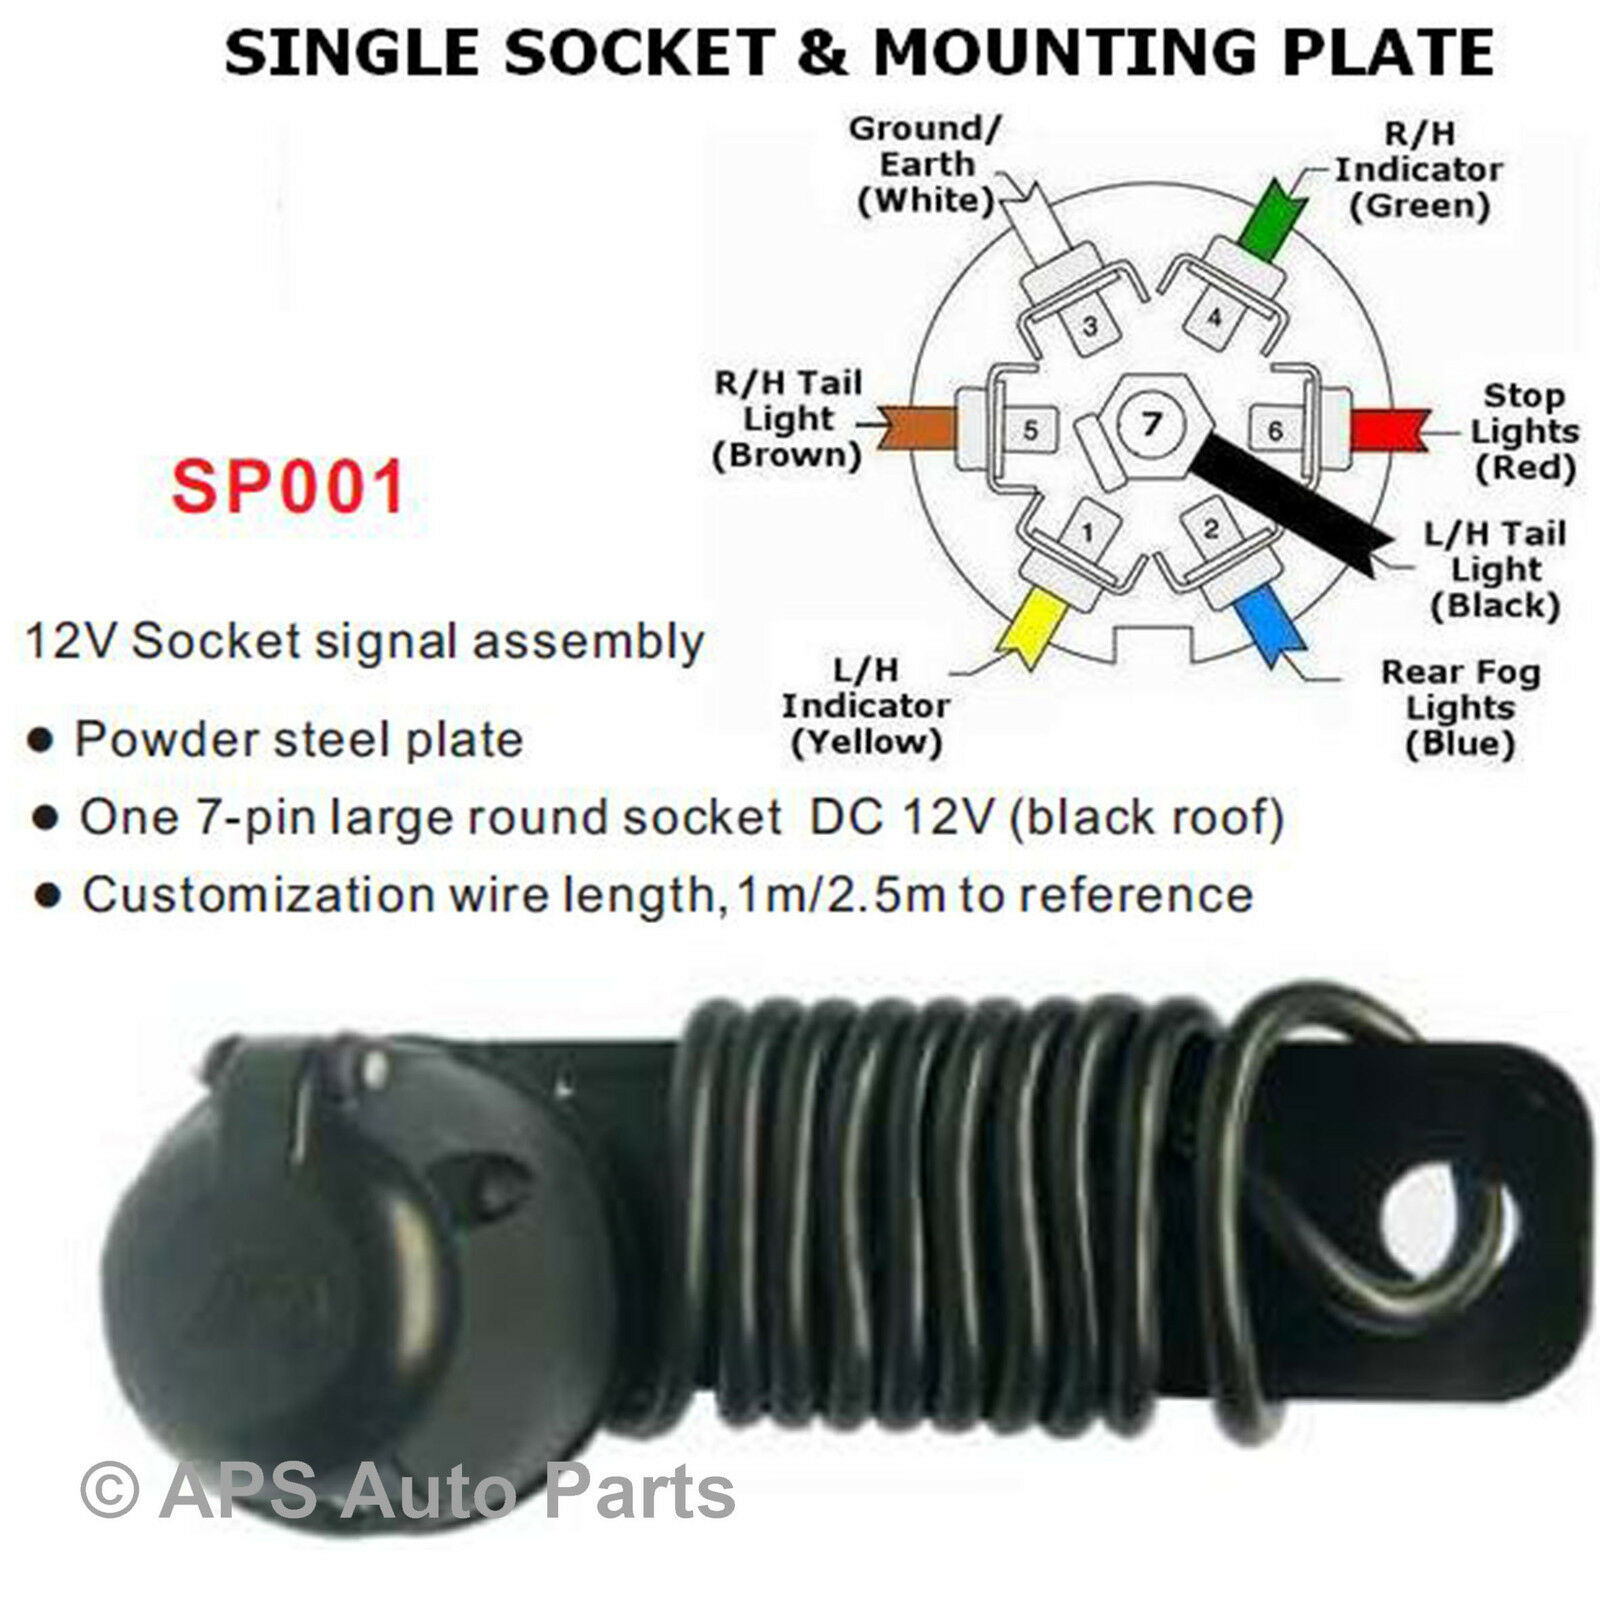 7 Pin Core 2m Towbar Wiring Kit Toe Bar Cable For Trailer Lights 12n Socket 1 Of 2free Shipping